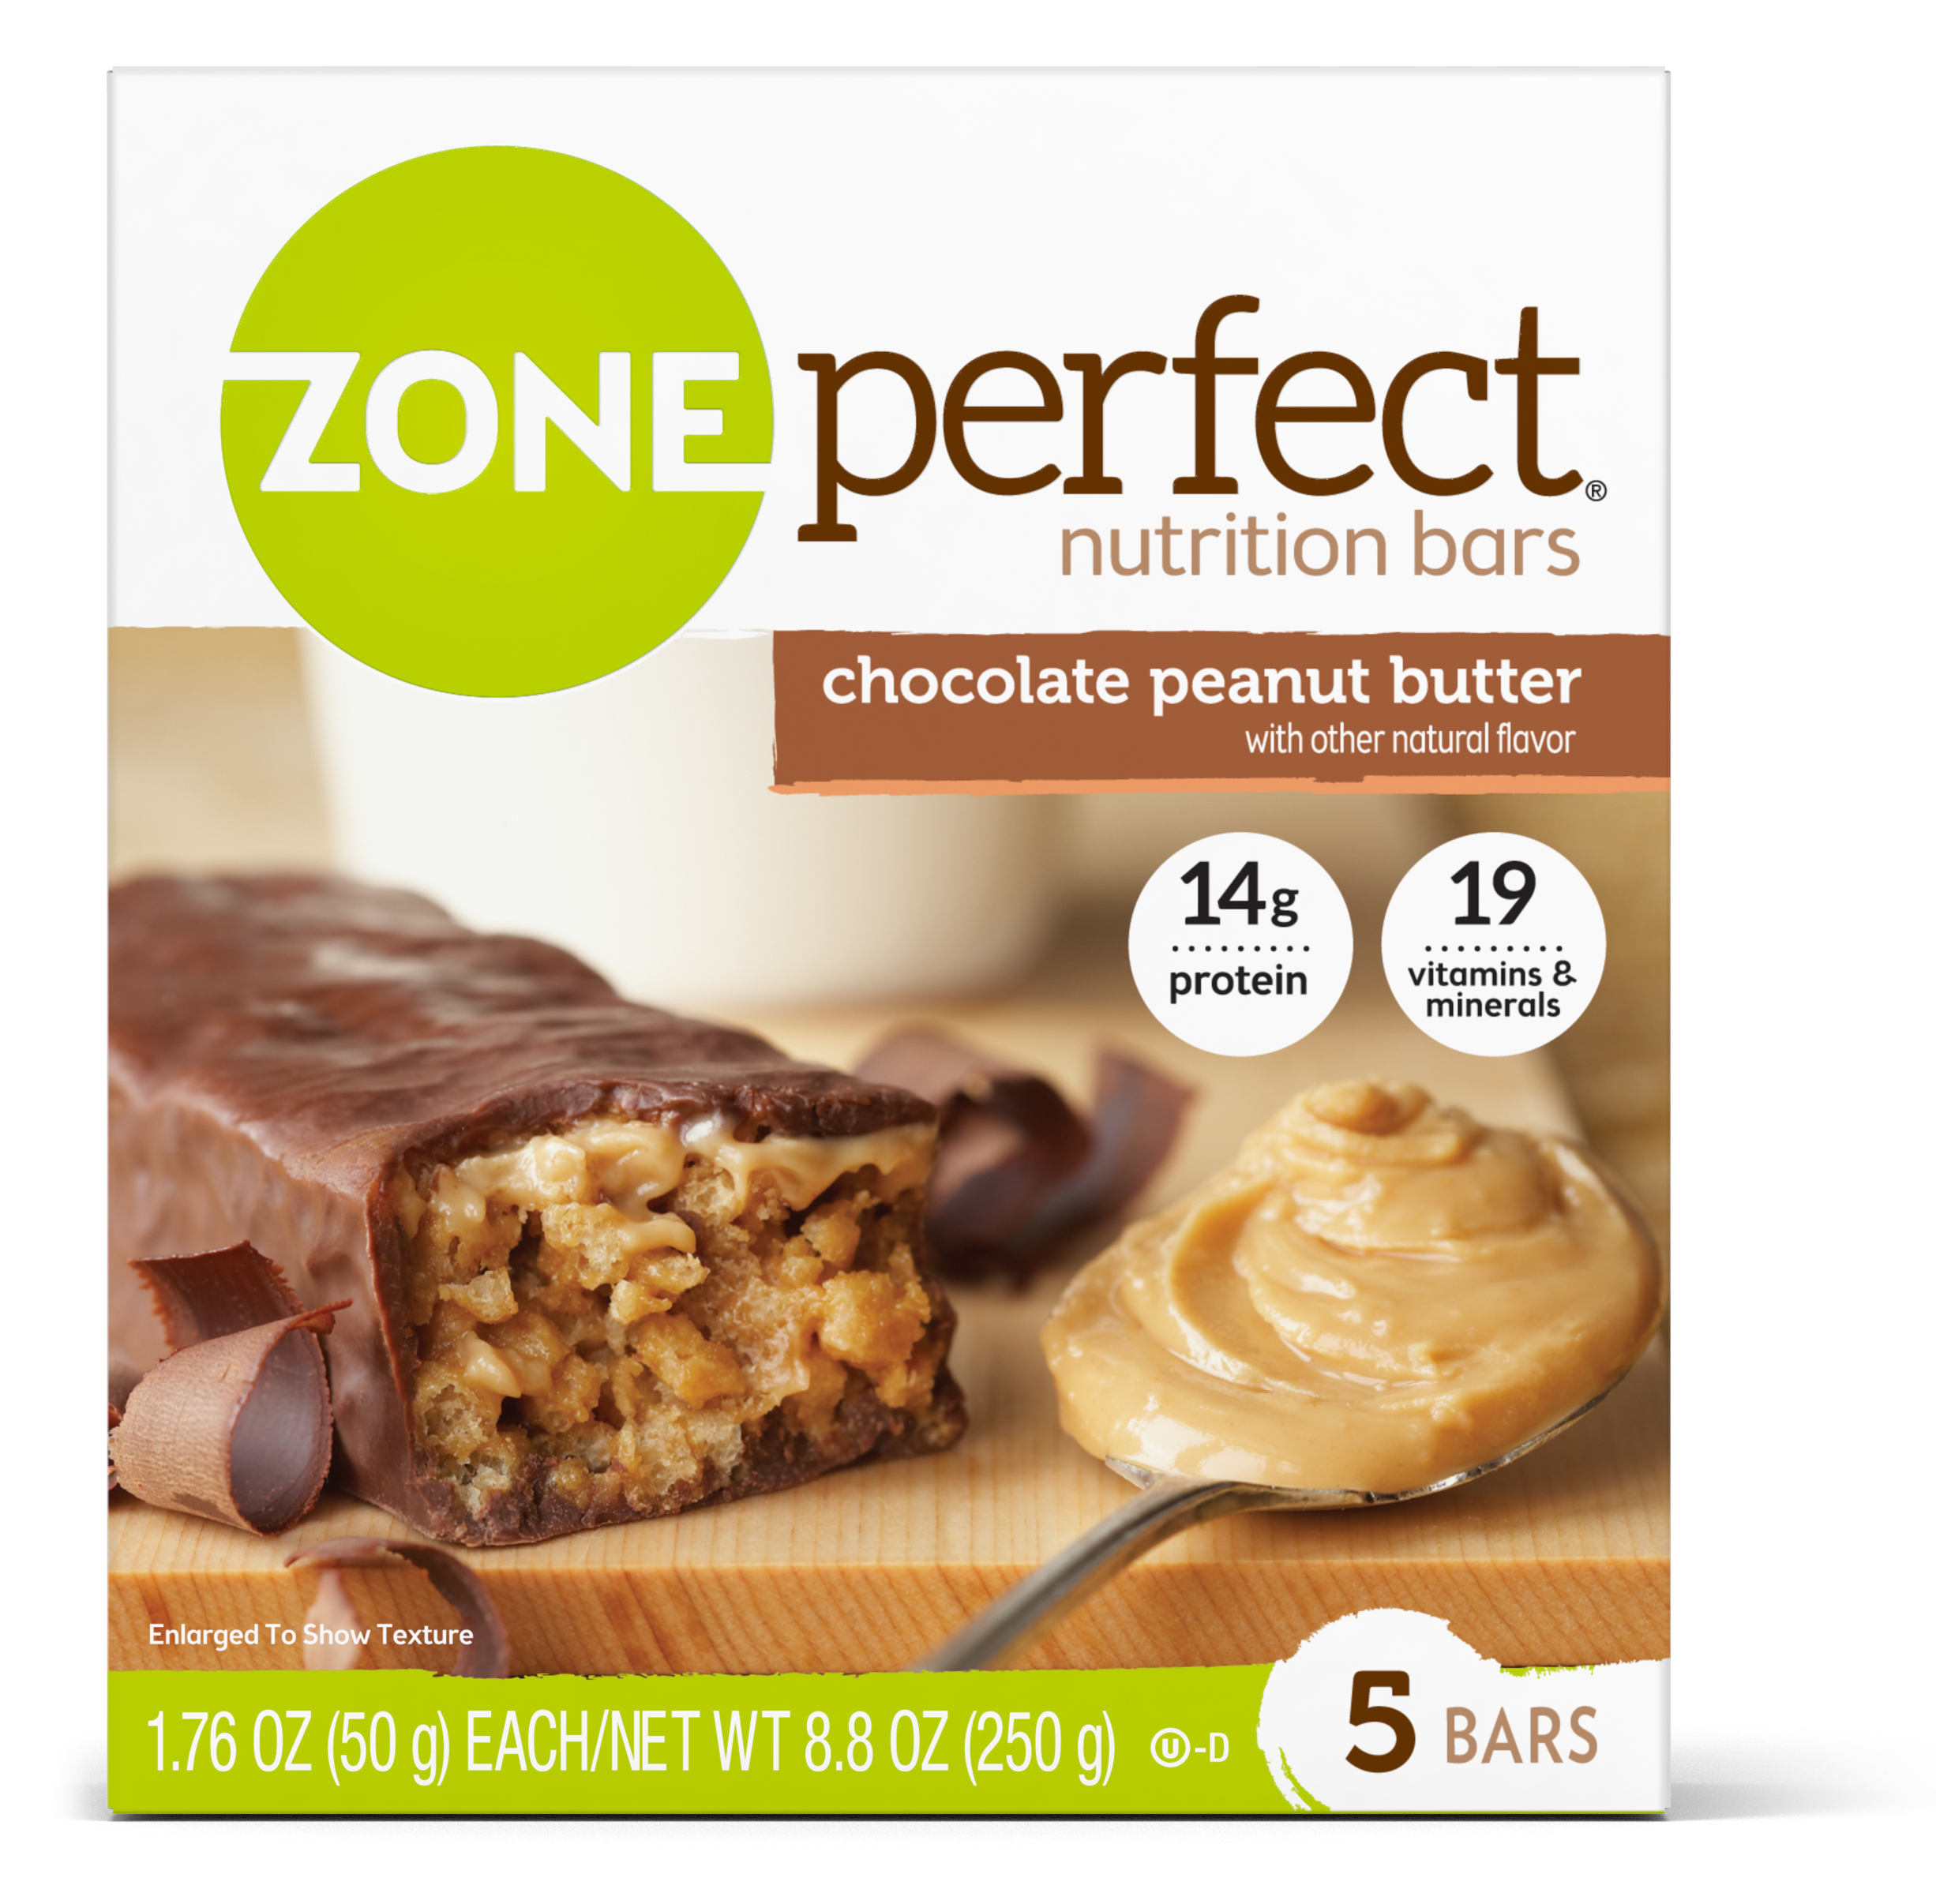 ZonePerfect Nutrition Bar, Chocolate Peanut Butter, 14g Protein, 5 Ct